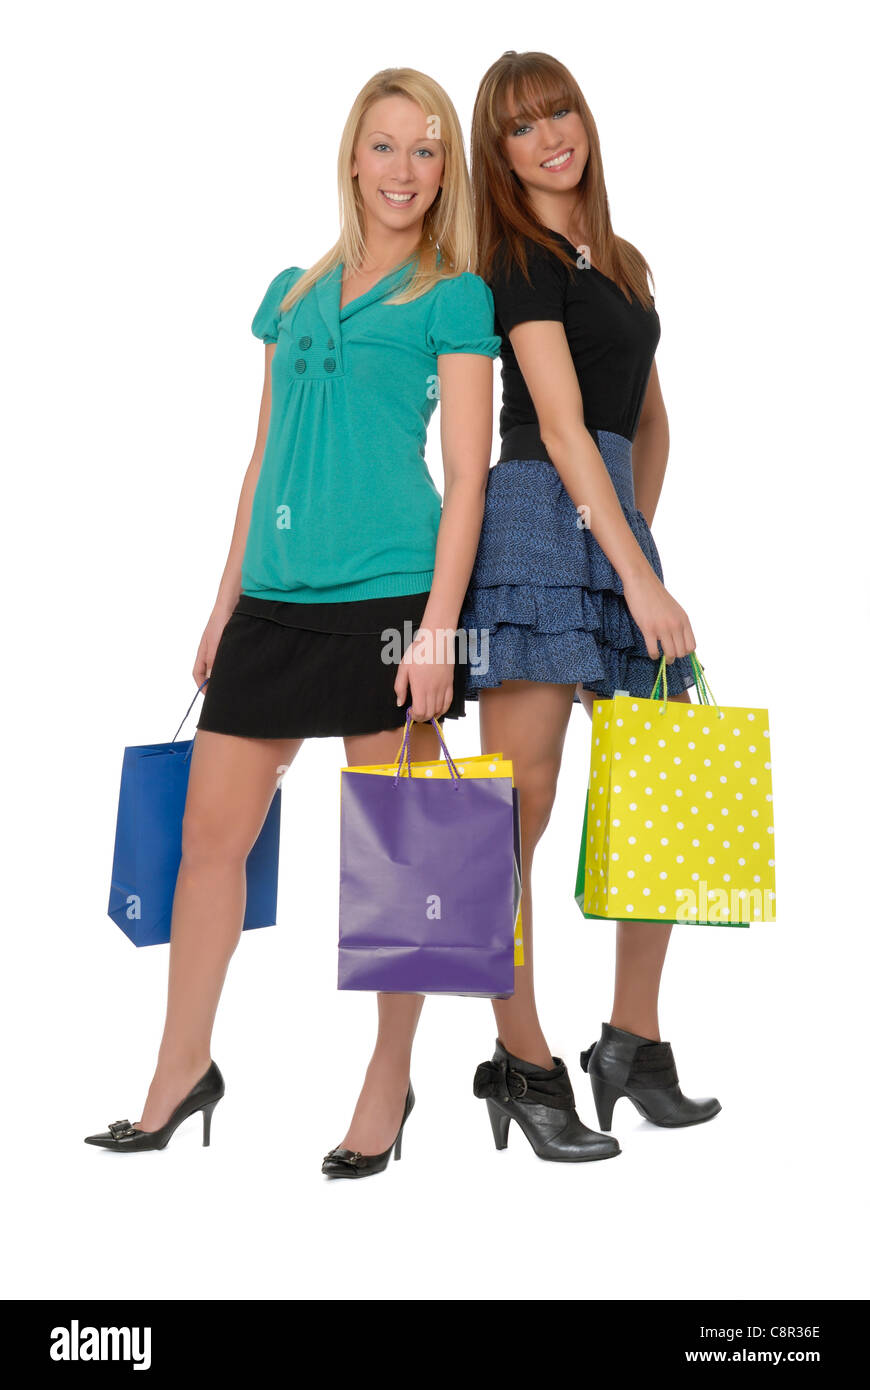 Two woman friends in their early 20s, holding shopping bags, smiling and looking at viewer. - Stock Image